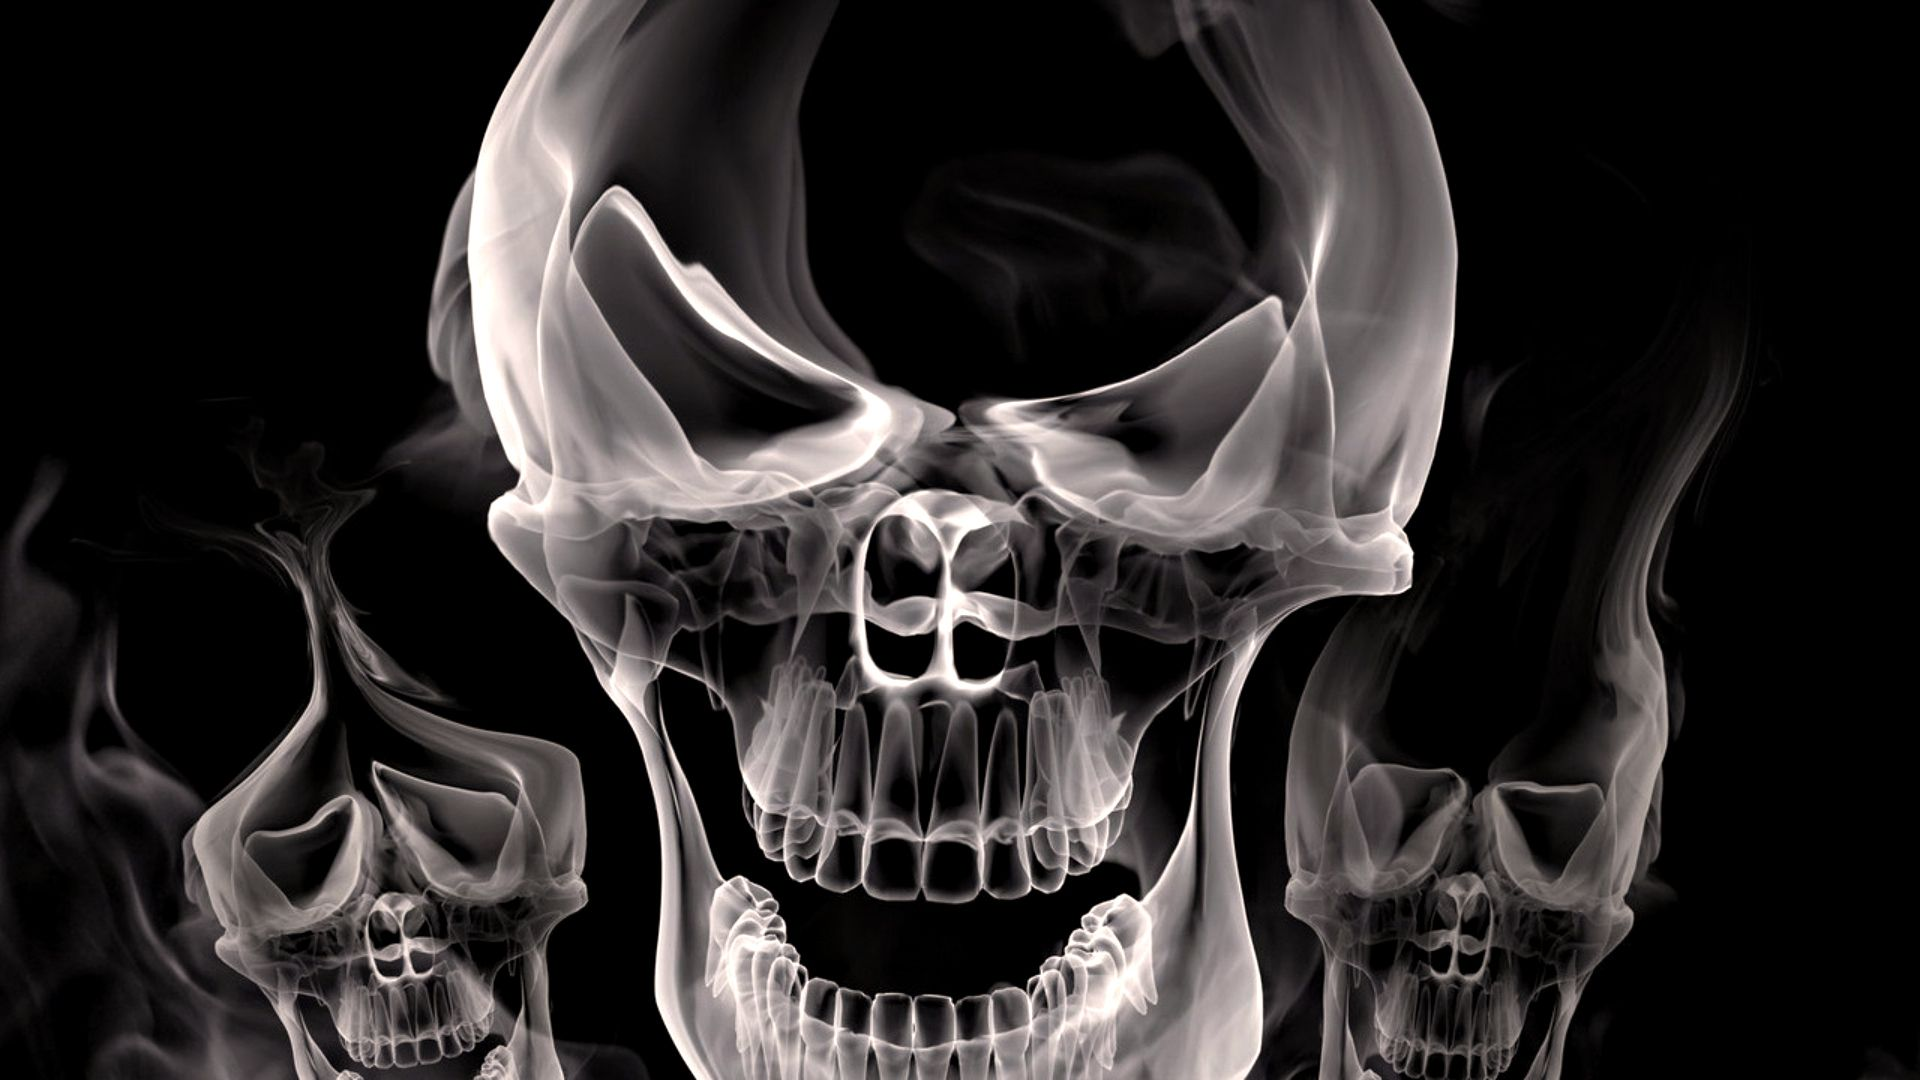 cool-3d-skull-wallpapers-5 - | download wallpaper | pinterest